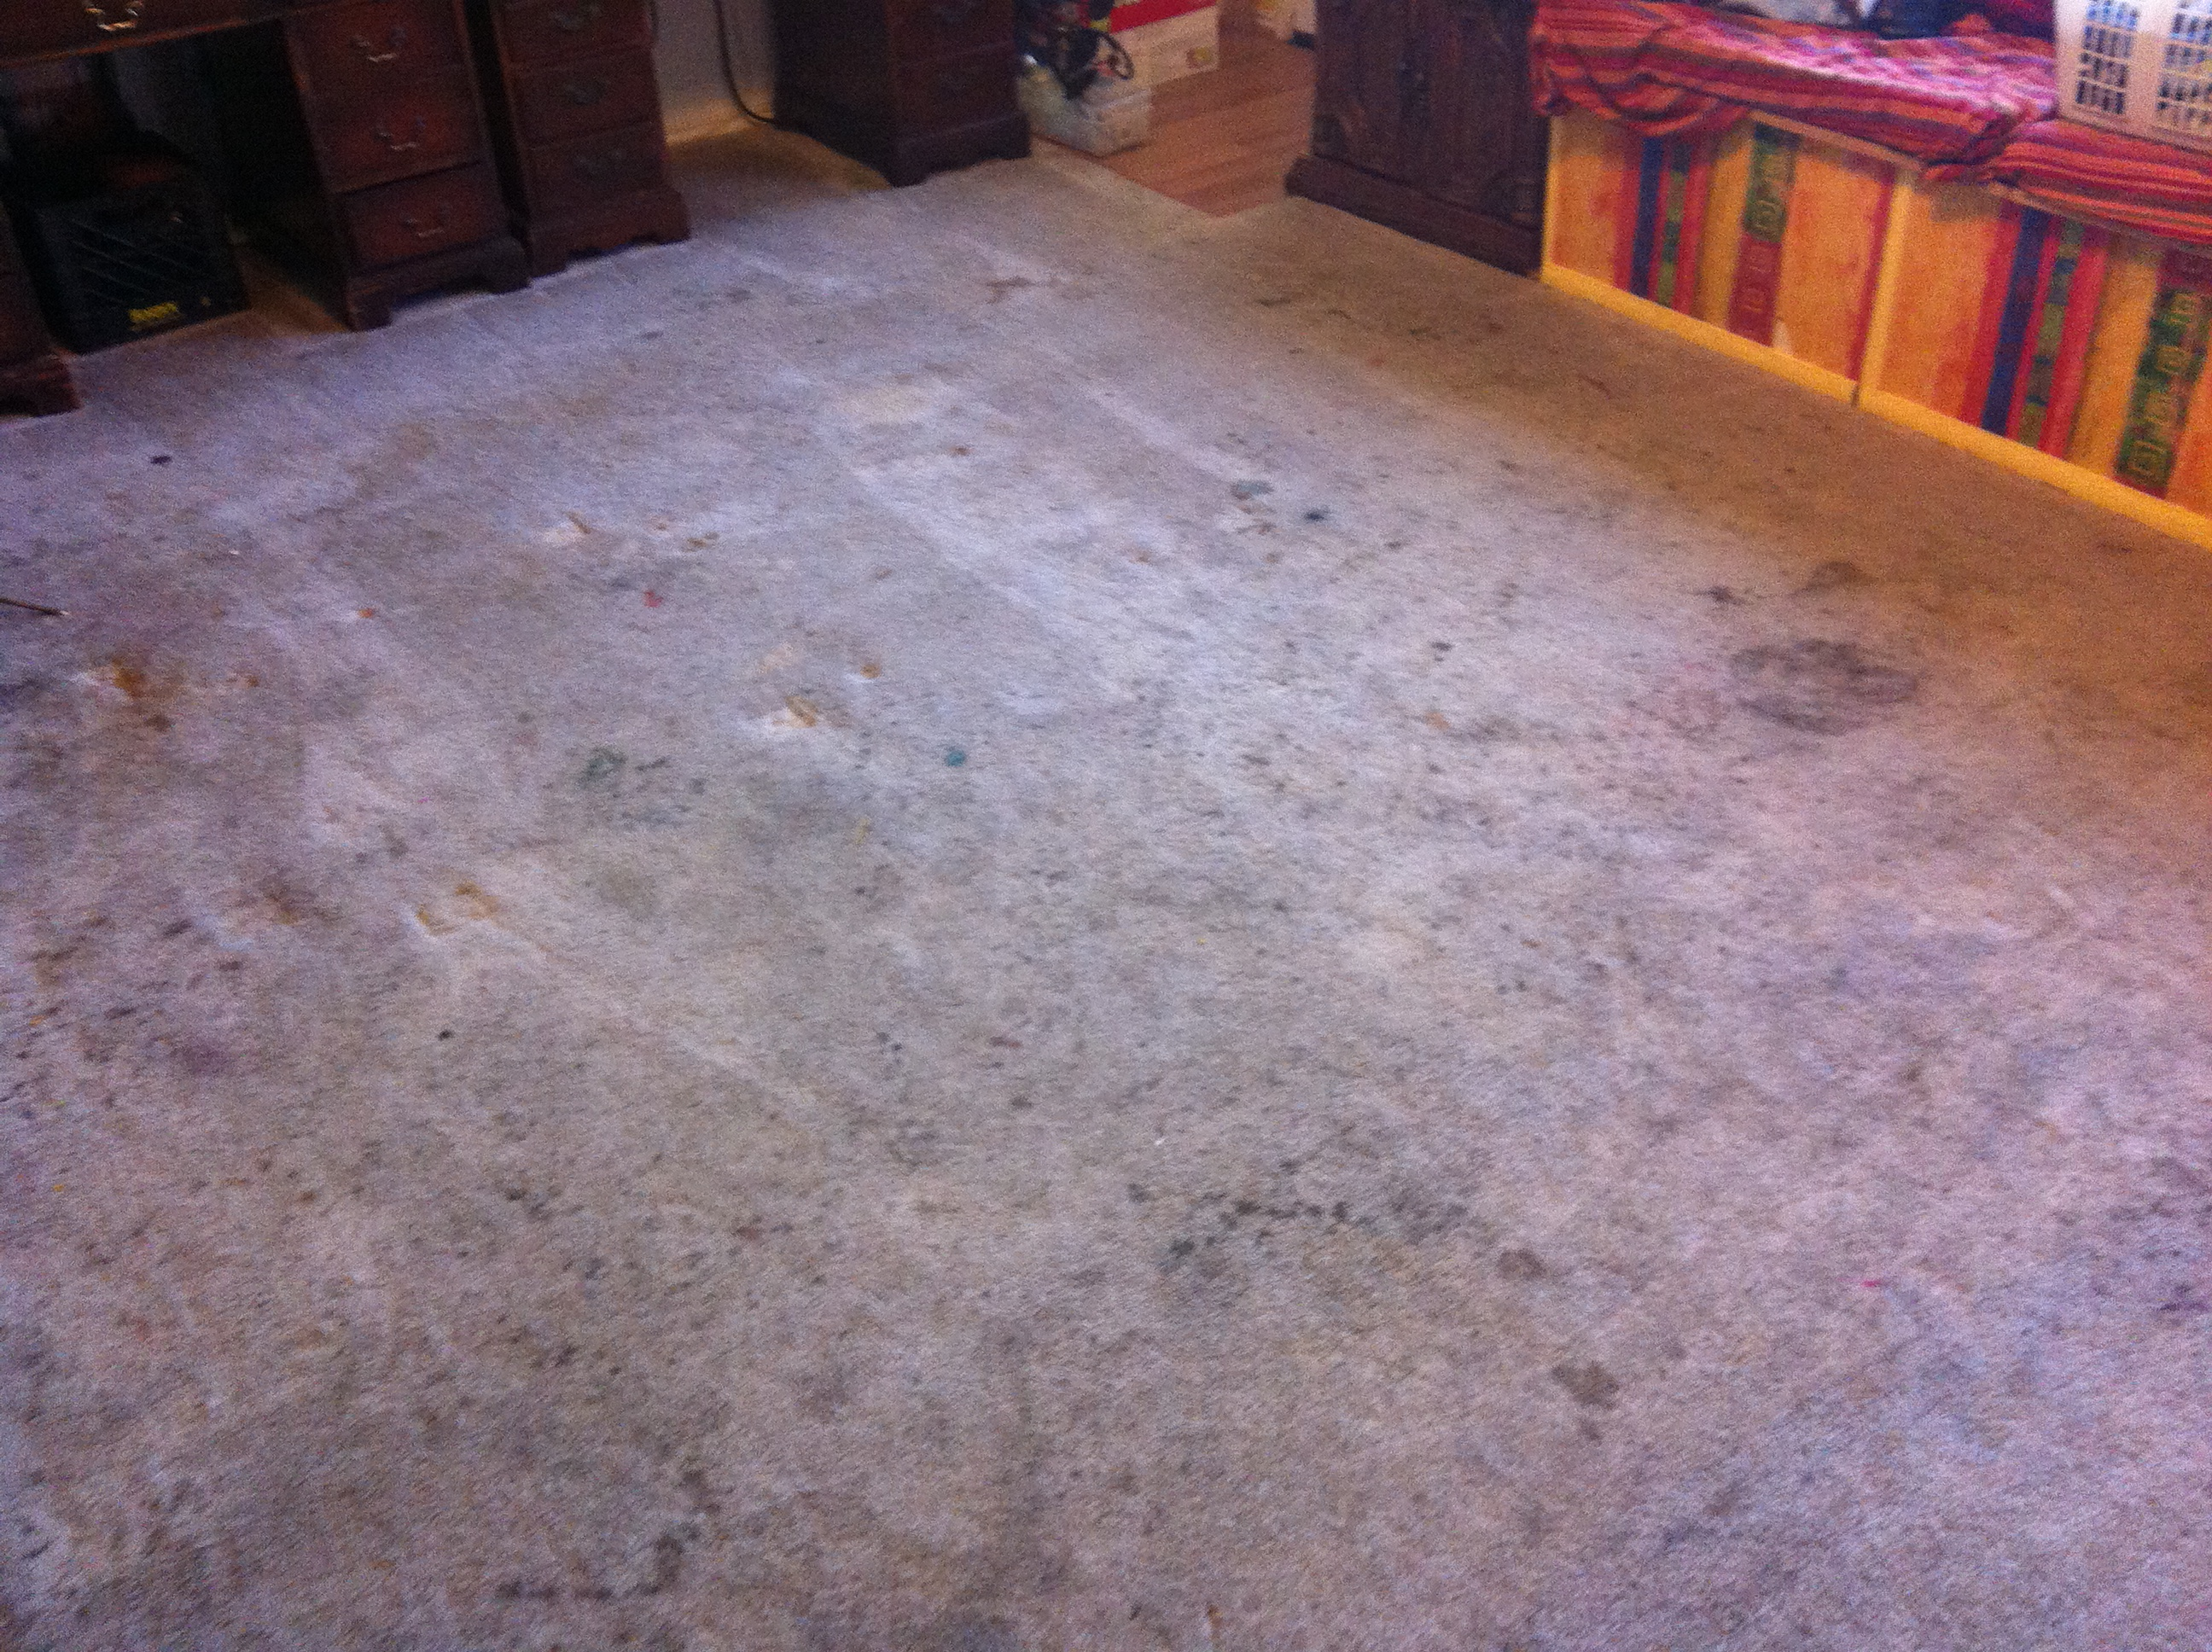 Heavily Stained Carpet Before